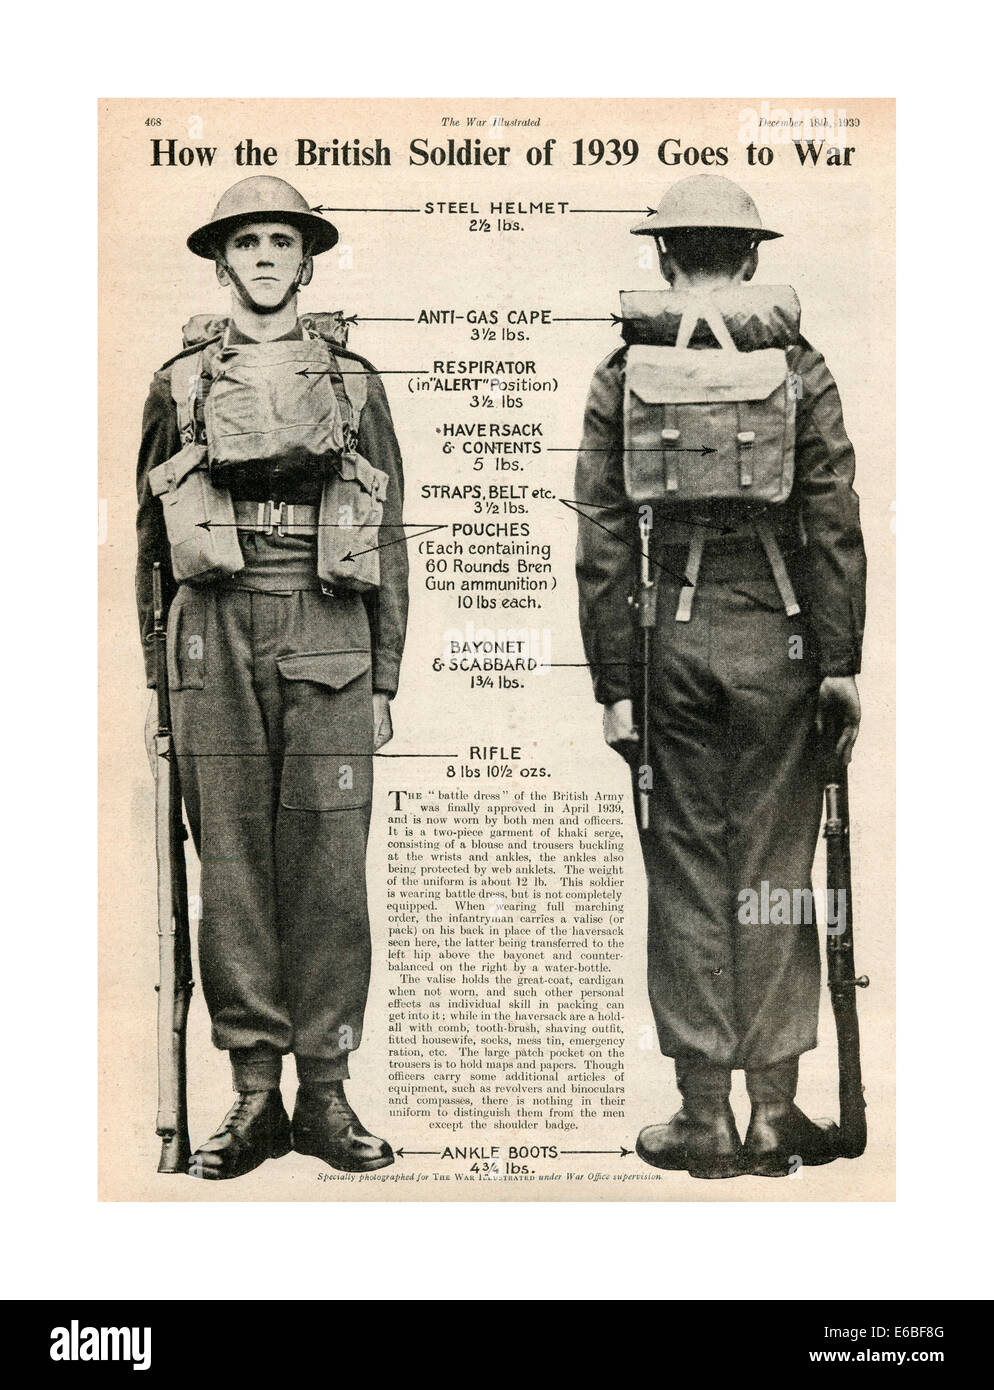 WW2 BRITISH ARMY SOLDIER UNIFORM 1930's Newspaper page showing a typical 'Tommy' British soldier at - Stock Image